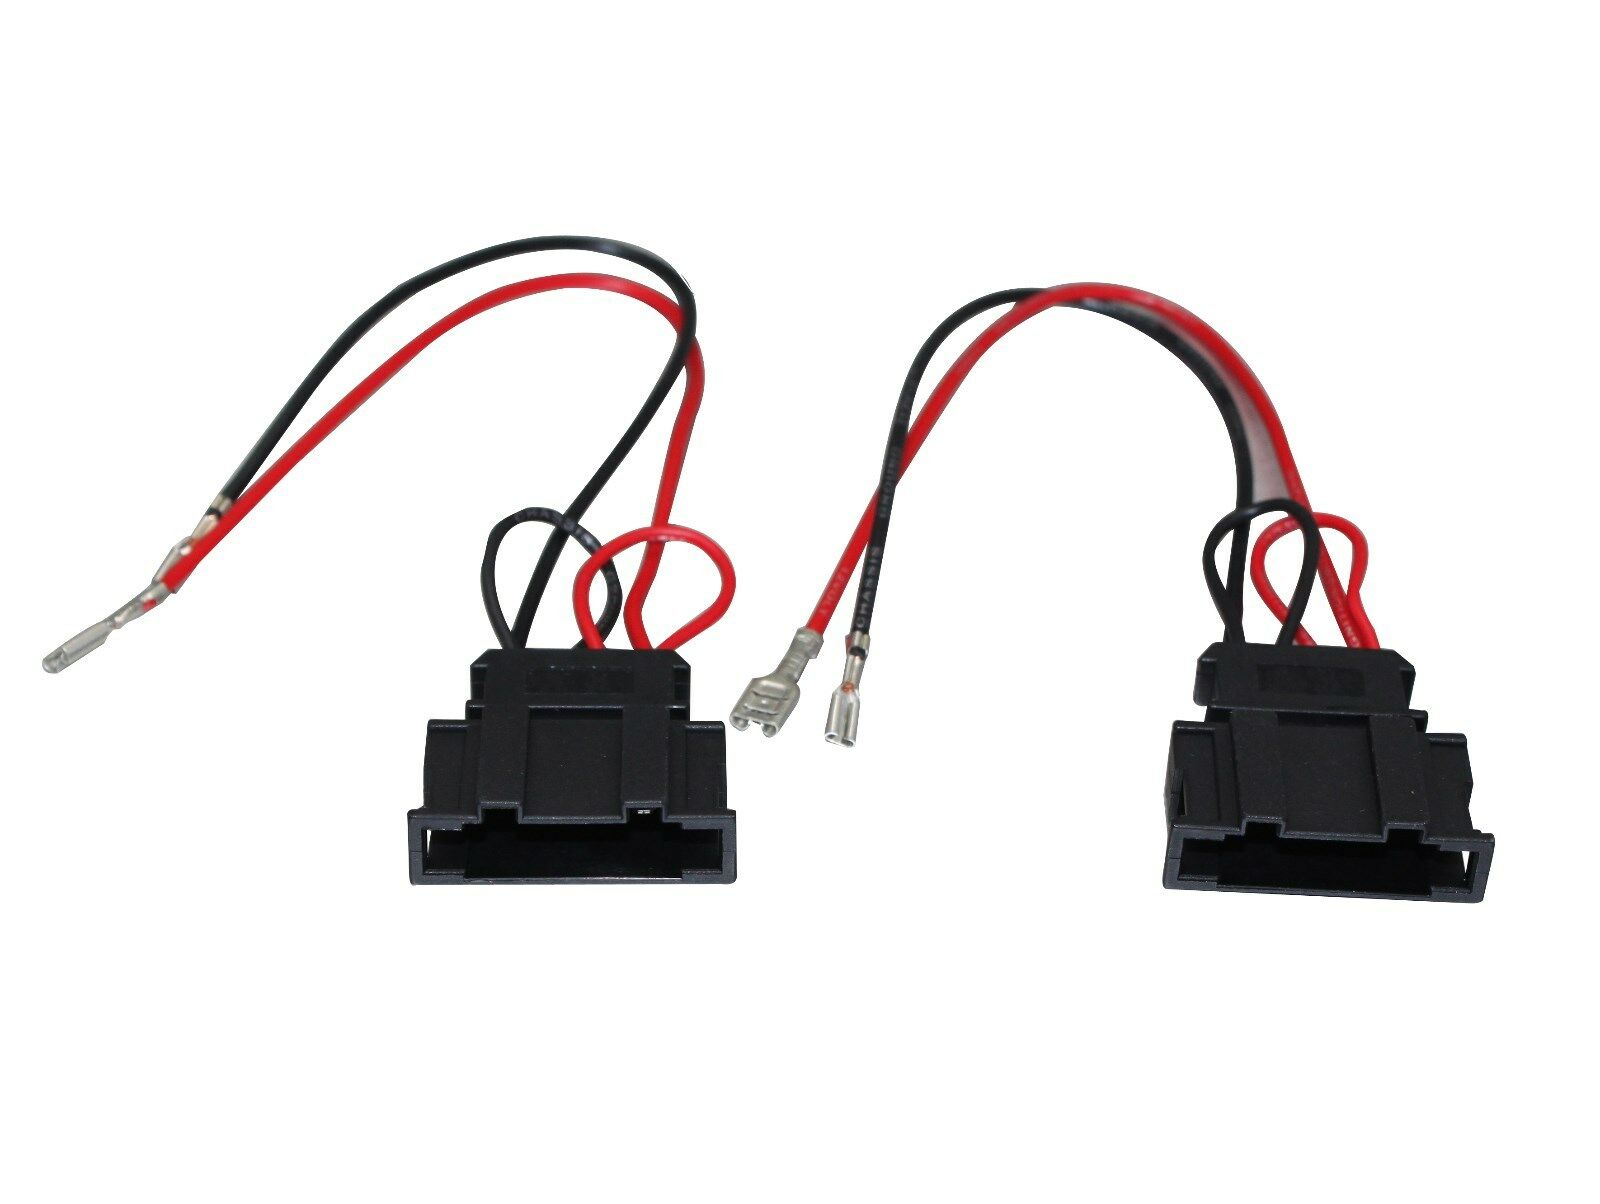 Radio Stereo Speaker Wire Harness Adapter Plug For Vw Seat Passat Golf Polo 1 Of 2free Shipping